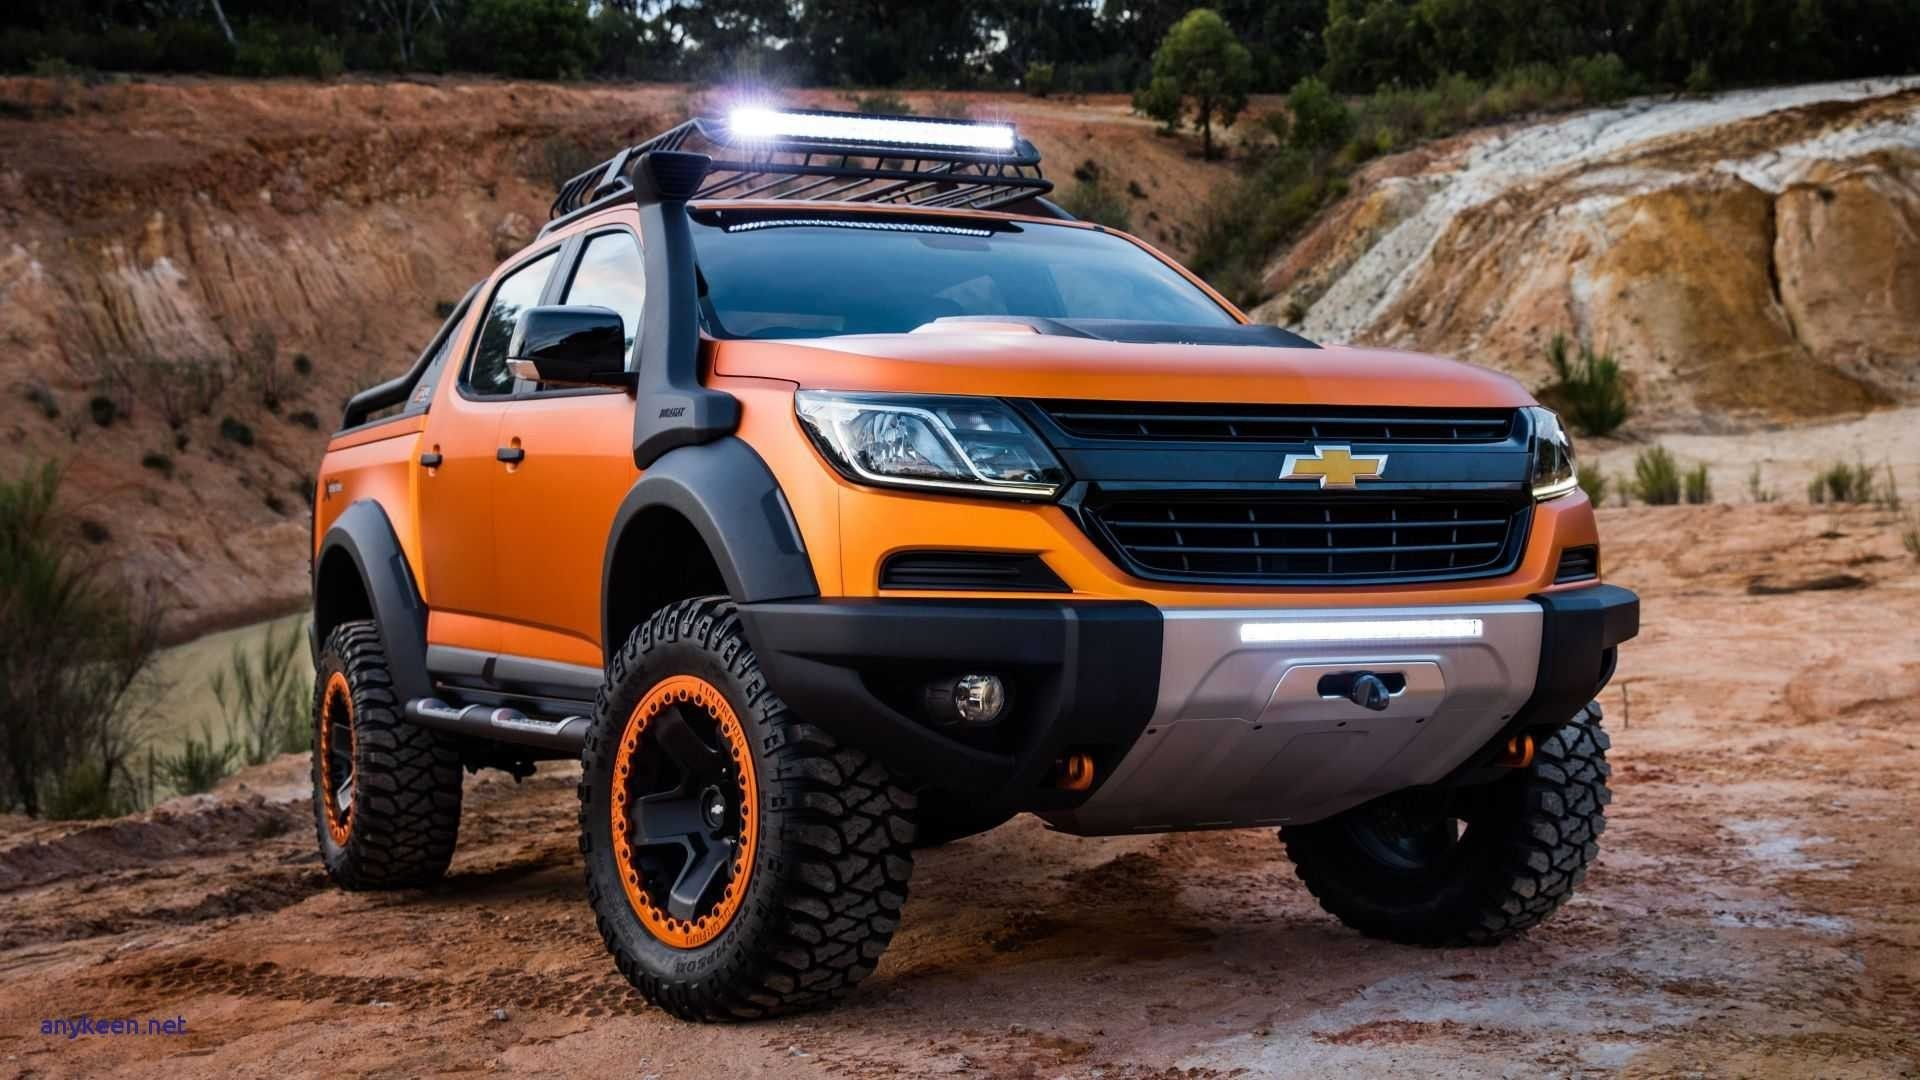 2019 Chevrolet Colorado Zr2 Price Chevrolet Colorado Chevy